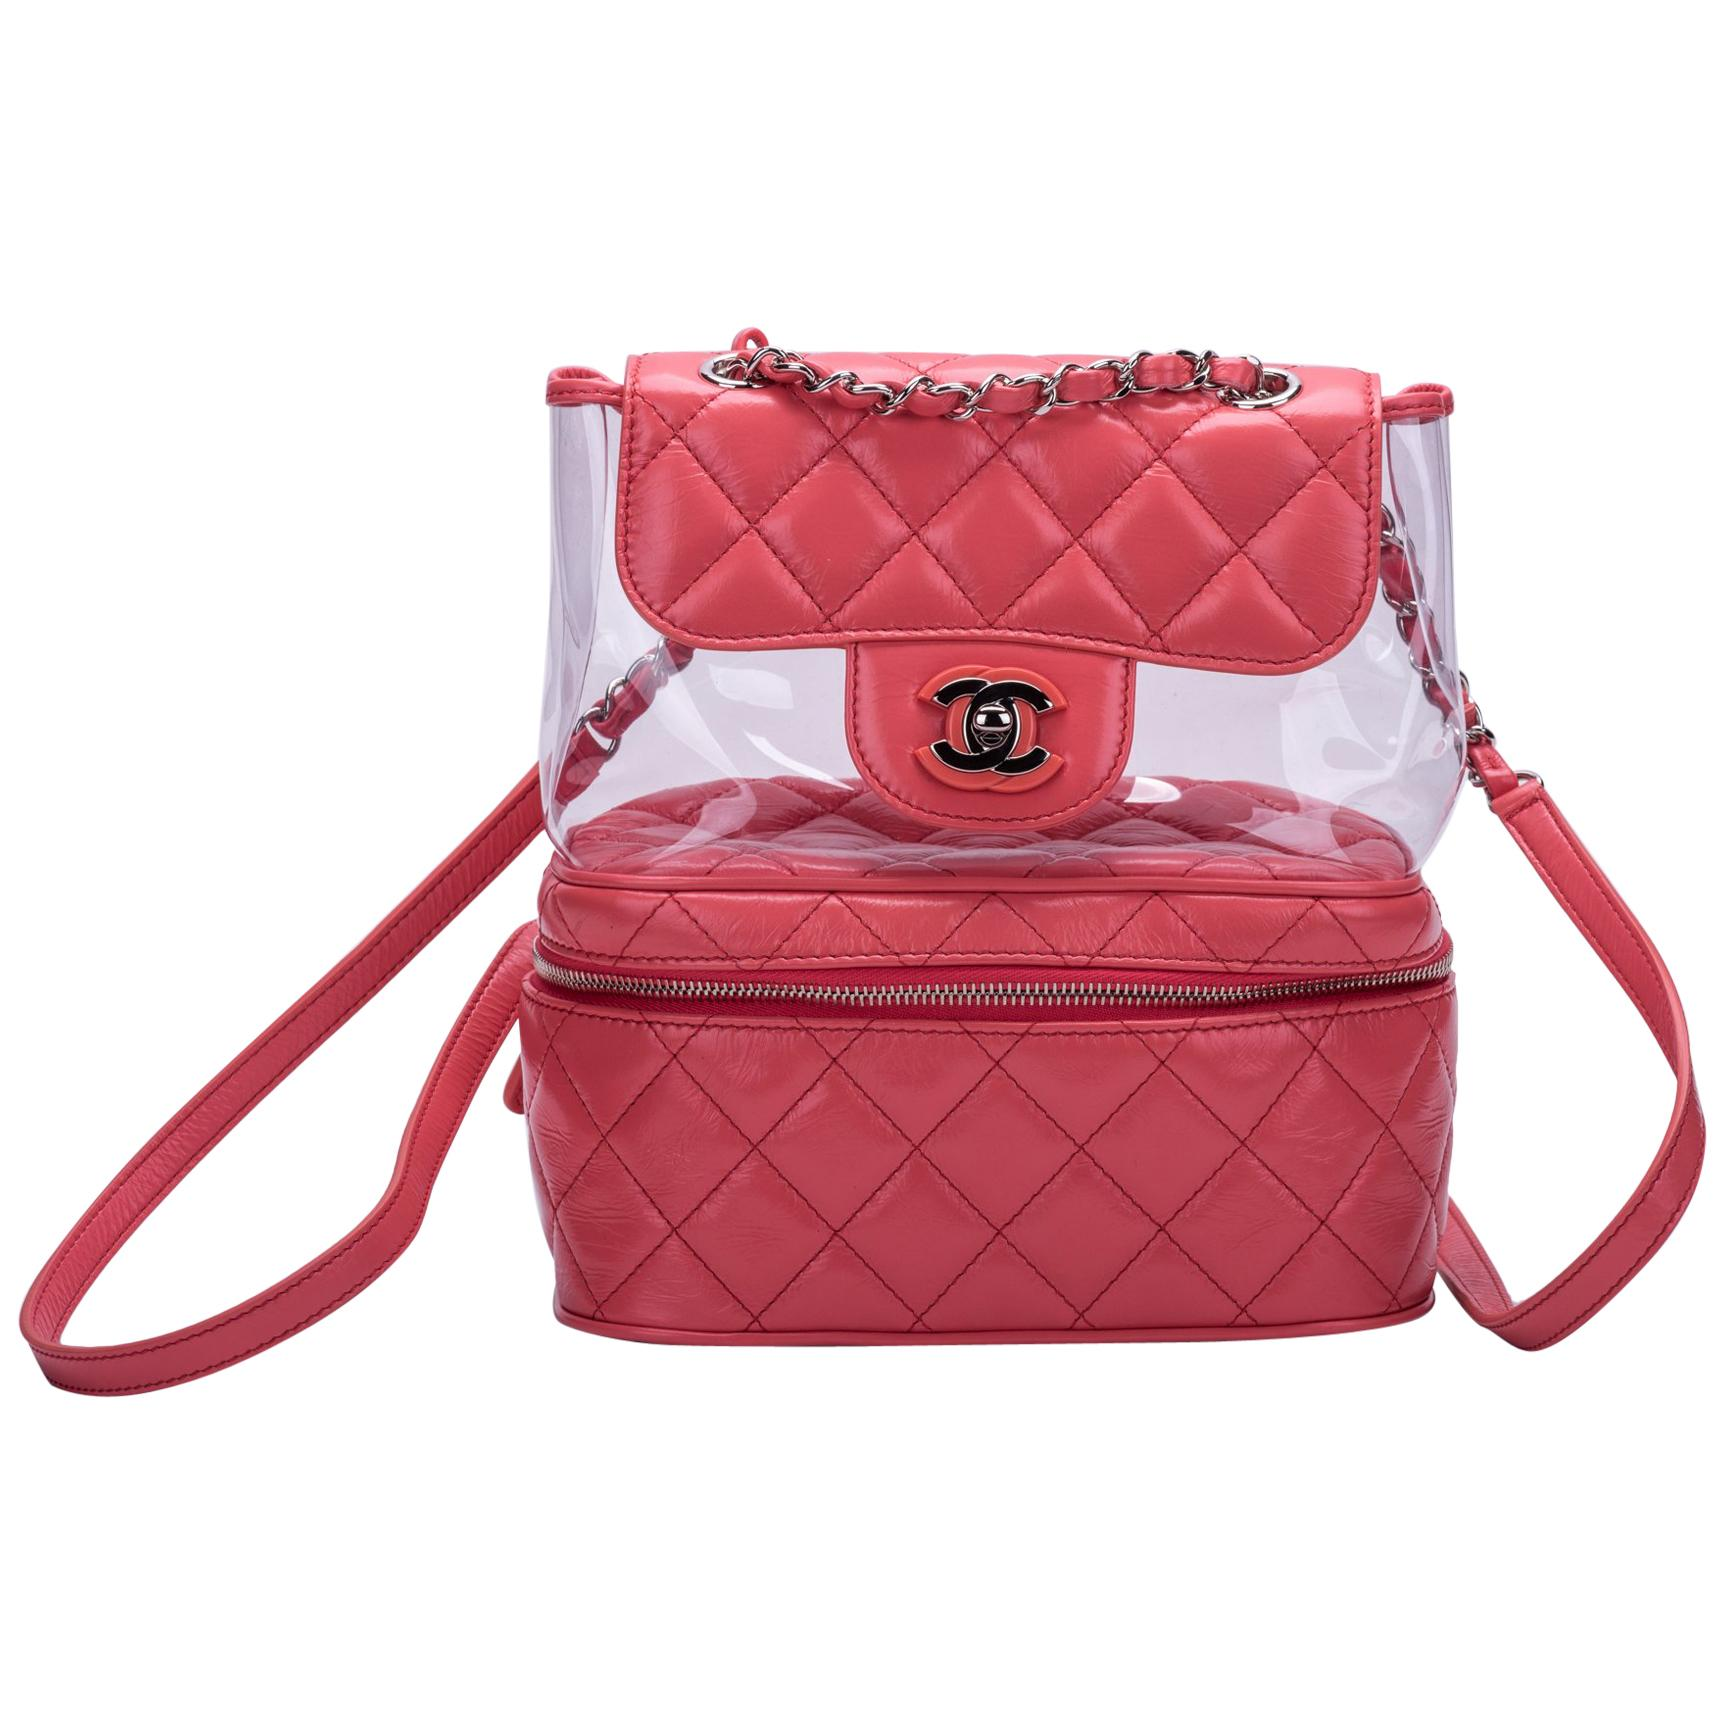 979fde406619 New in Box Chanel Sold Out Pink Quilted Lambskin Leather Clear Backpack For  Sale at 1stdibs